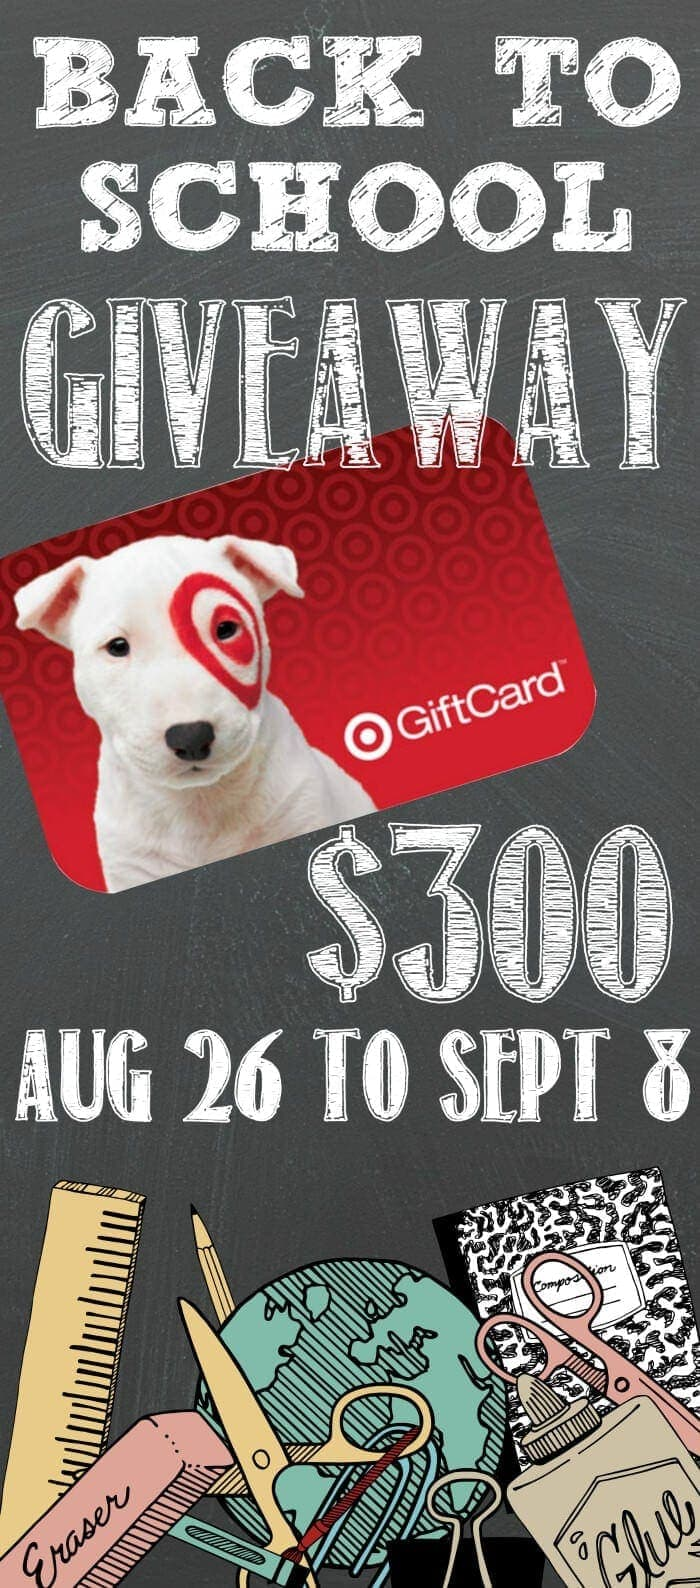 Back To School $300 Target Gift Card Giveaway!